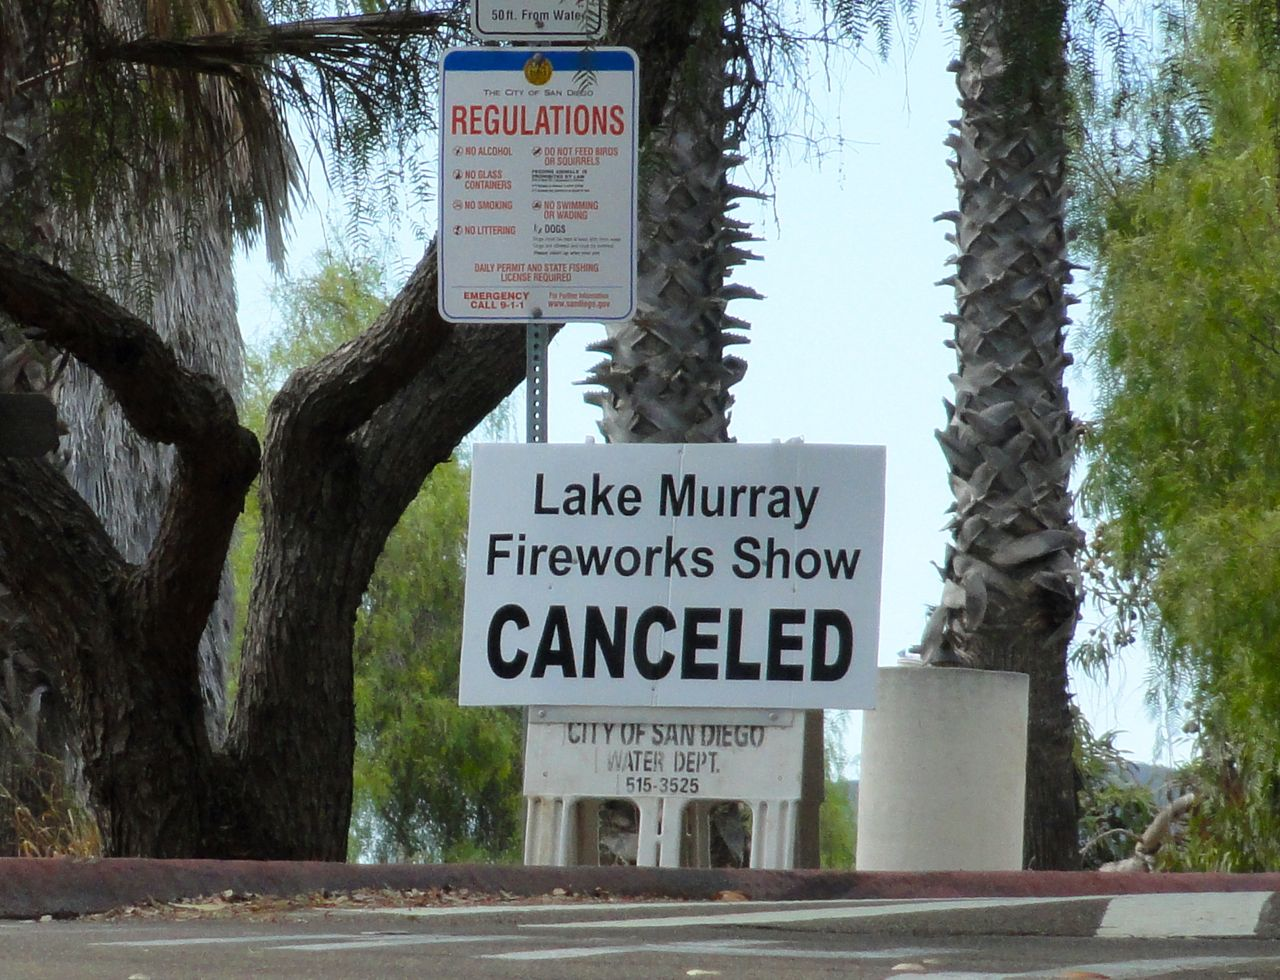 Lake Murray Fourth of July Fireworks Show Canceled Again